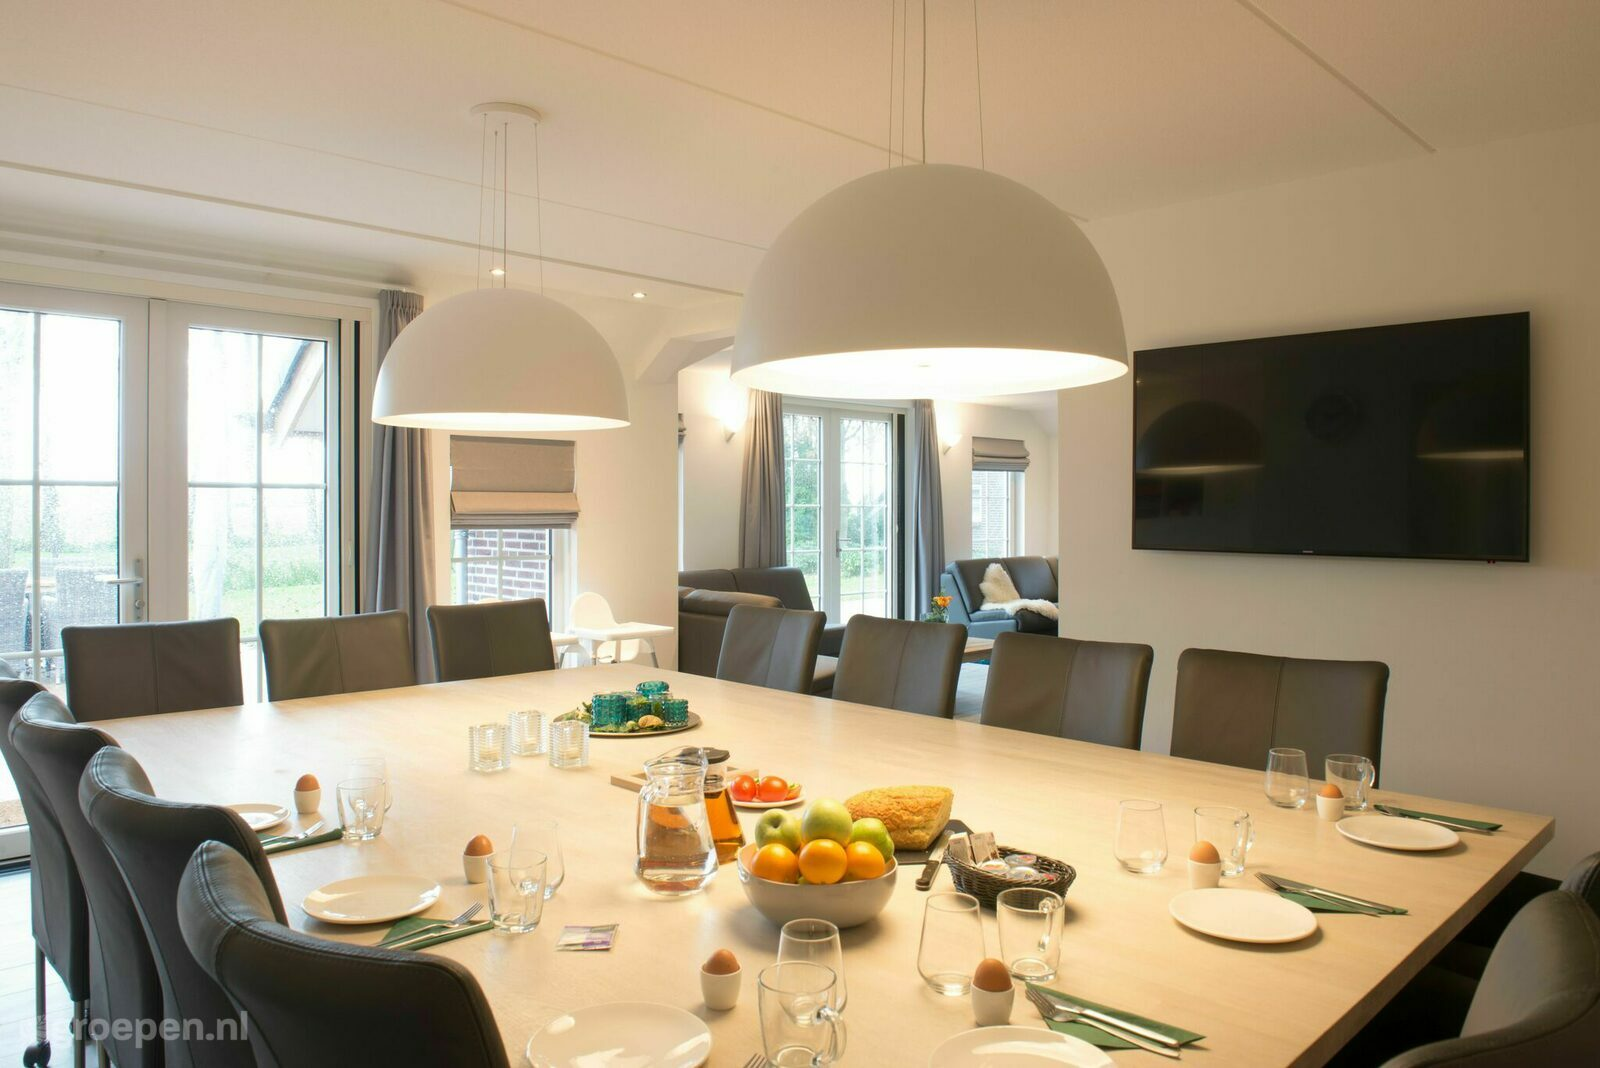 Group accommodation Hellendoorn